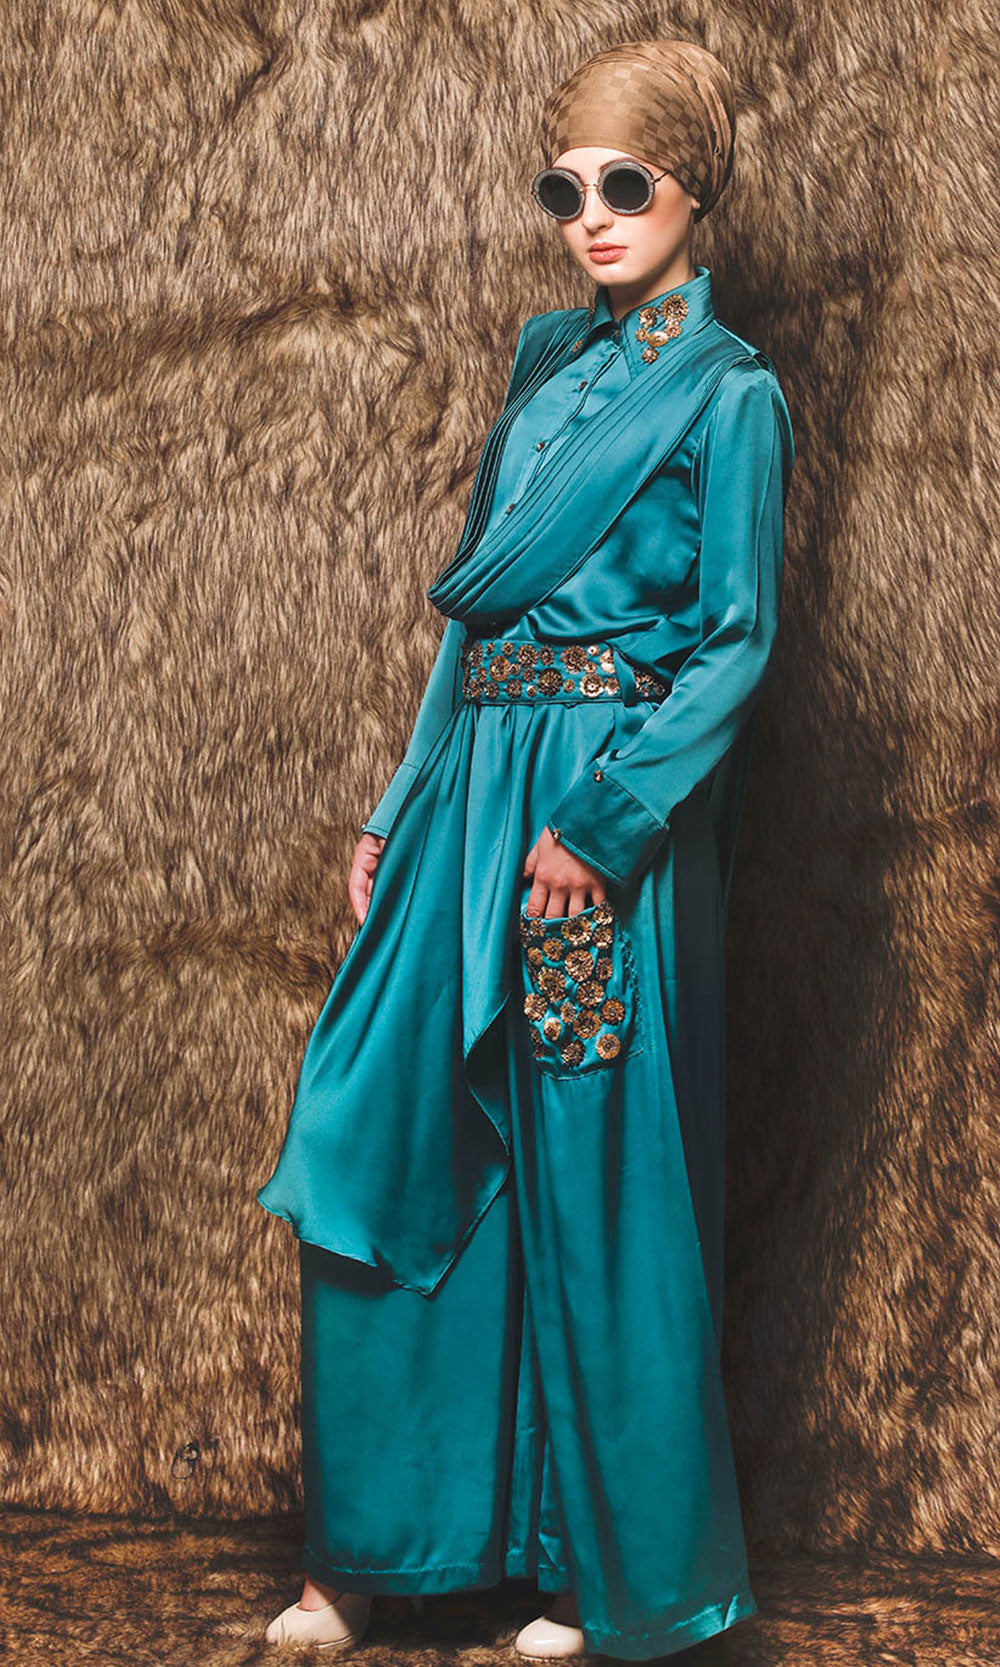 Sea Green Modest Jumpsuit